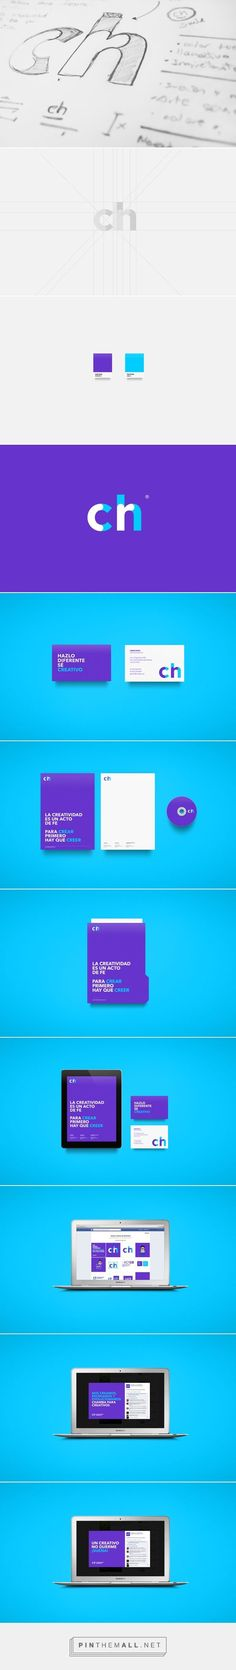 Chamba para Creativos ® on Behance - created via http://pinthemall.net                                                                                                                                                      もっと見る